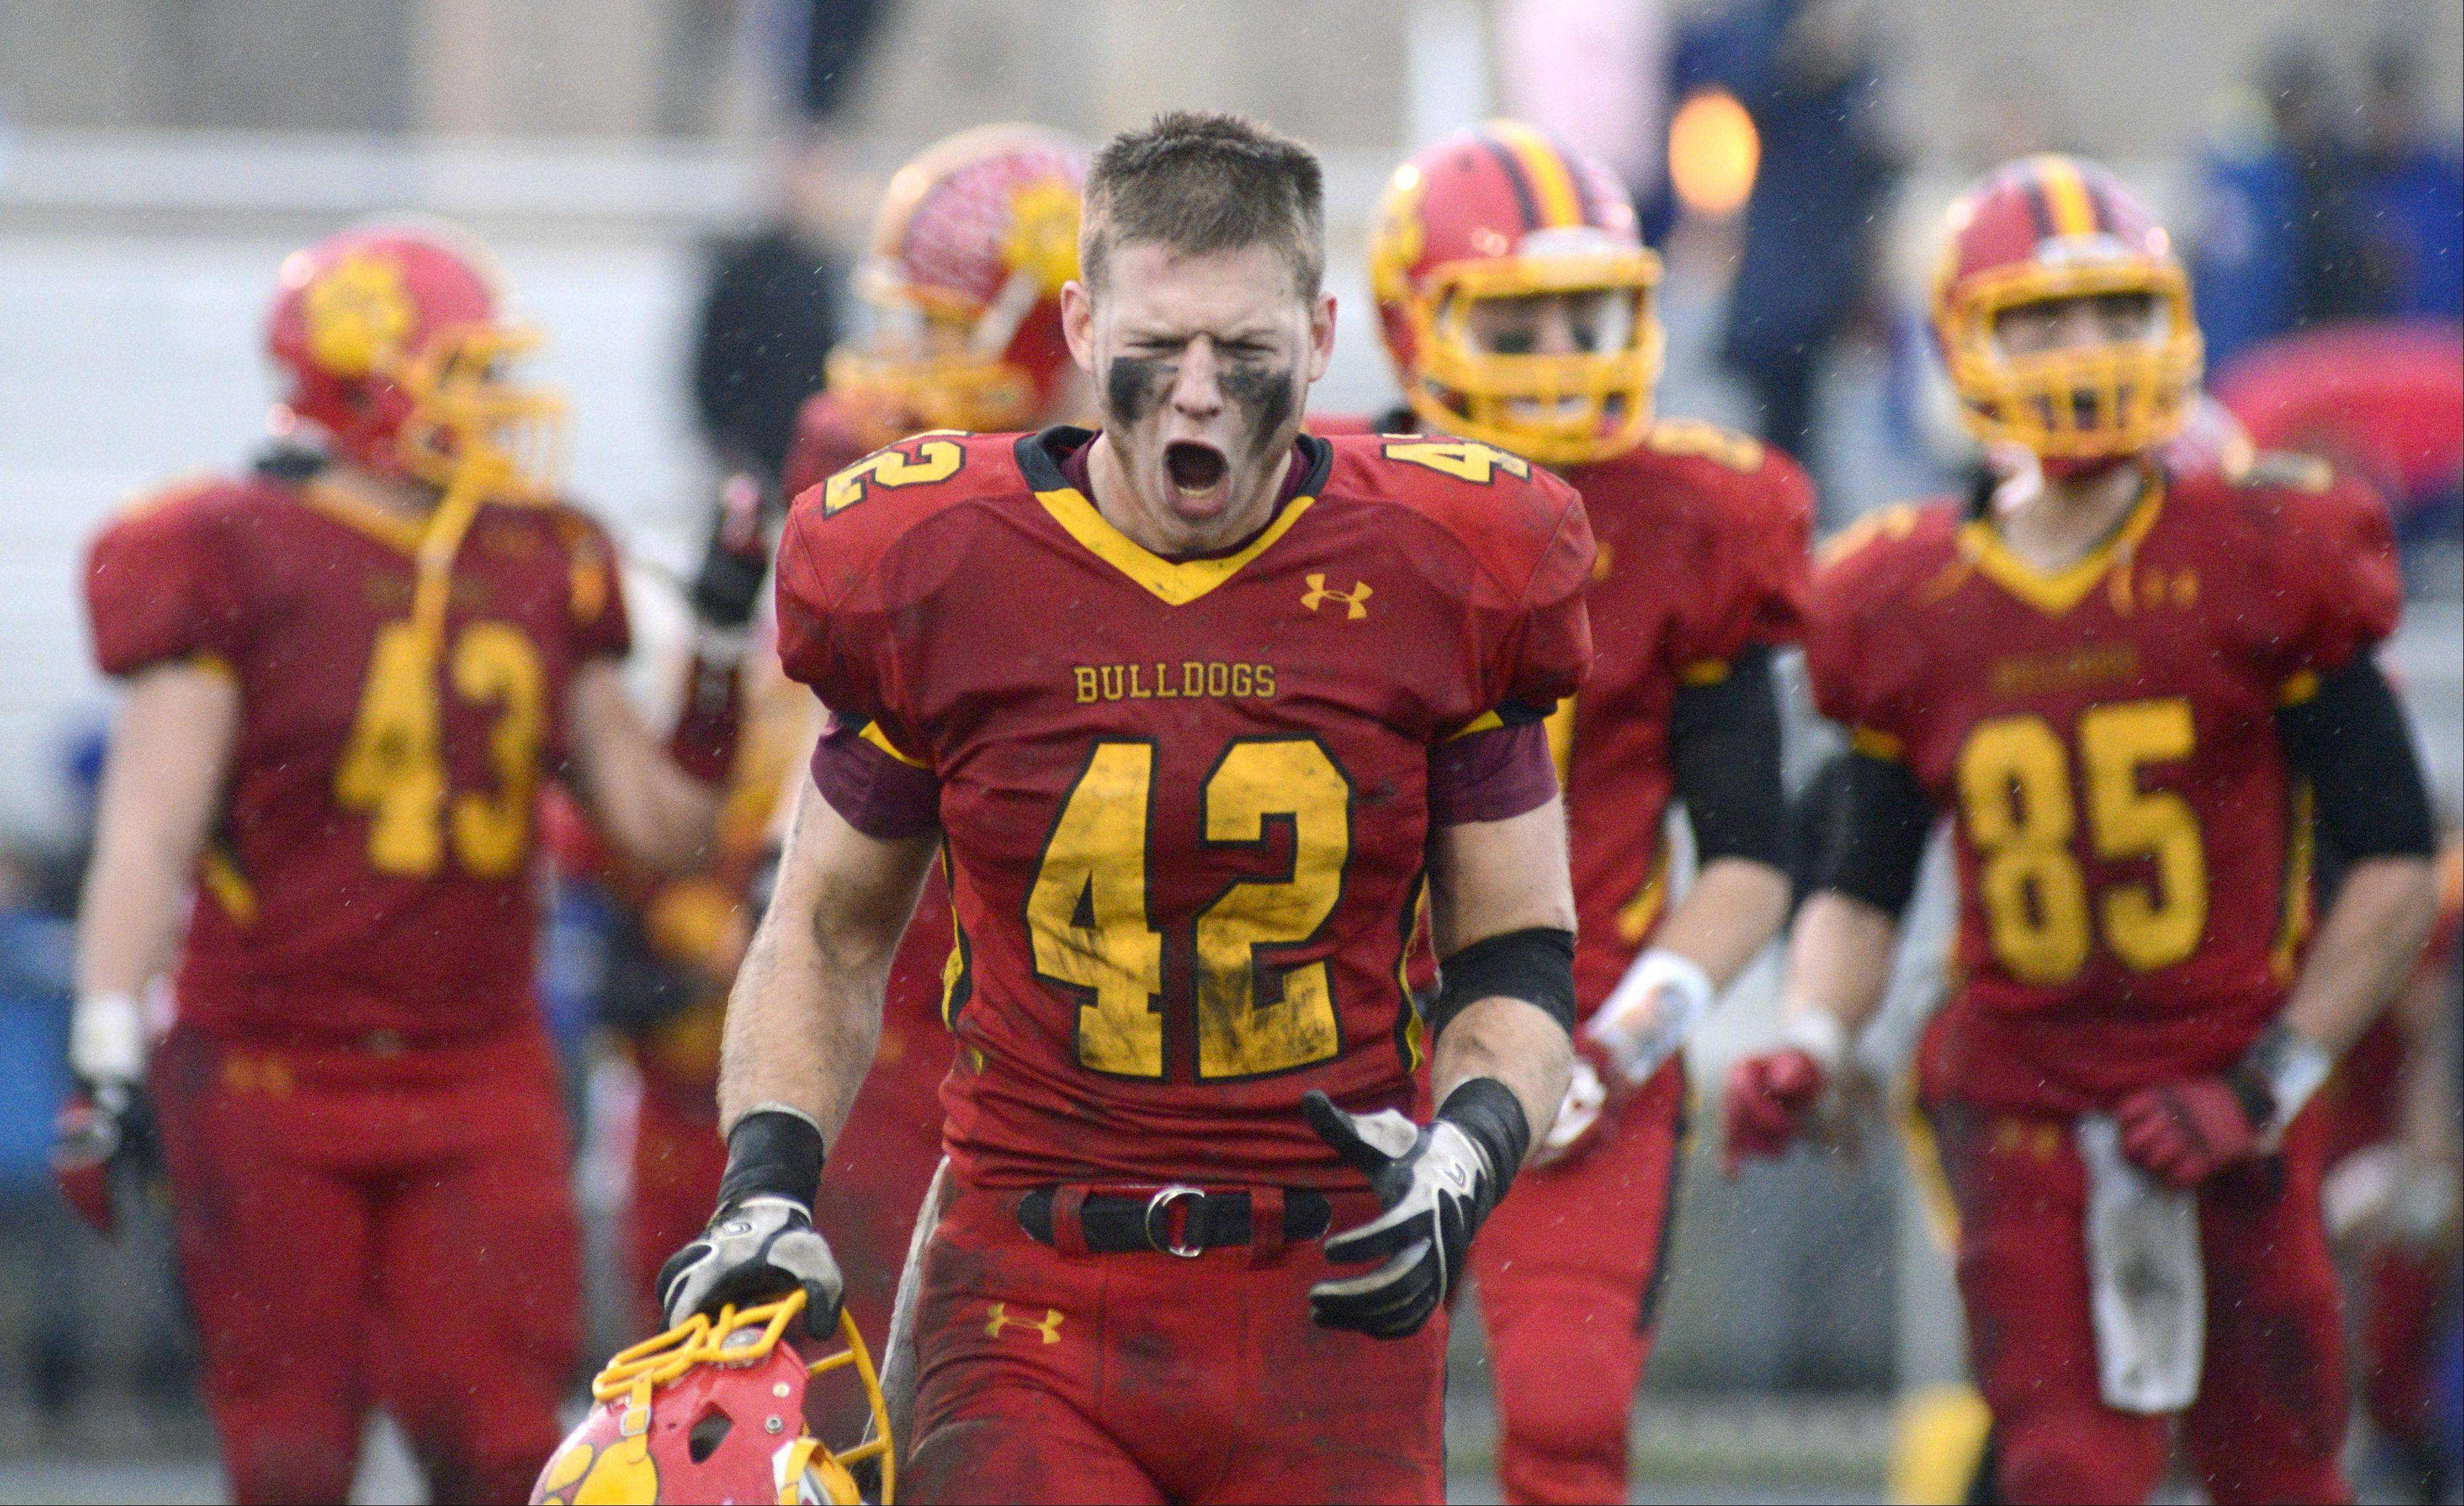 Batavia�s Rourke Mullins skips over the goal line after shaking off Lake Forest�s Andrew Nelson (6) and Jake Yale in the third quarter of the Class 6A quarterfinal on Saturday, November 16.